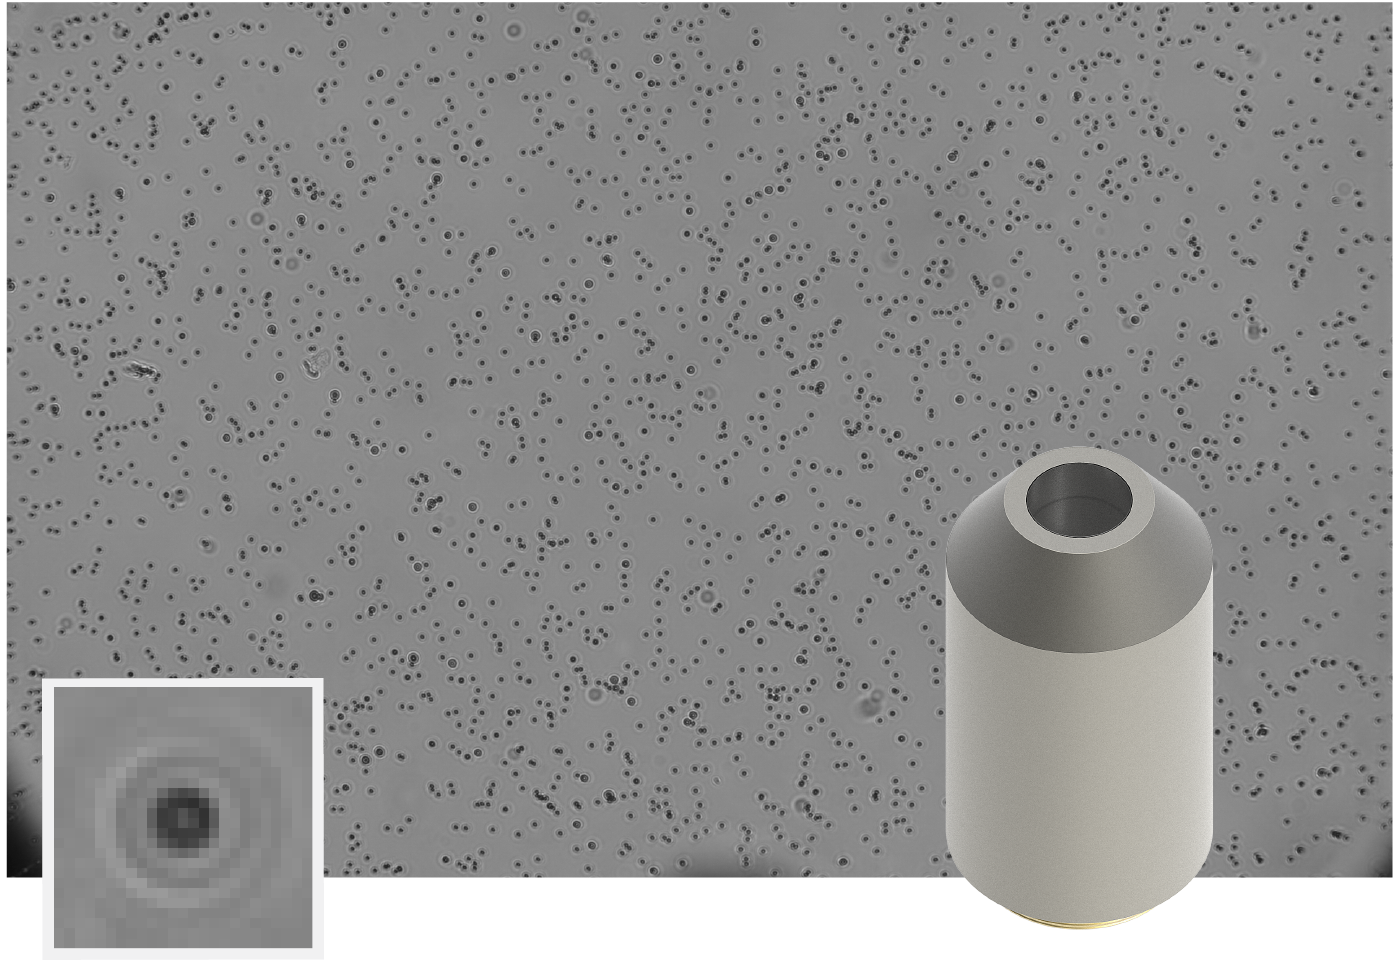 AFS 10x Magnification objective